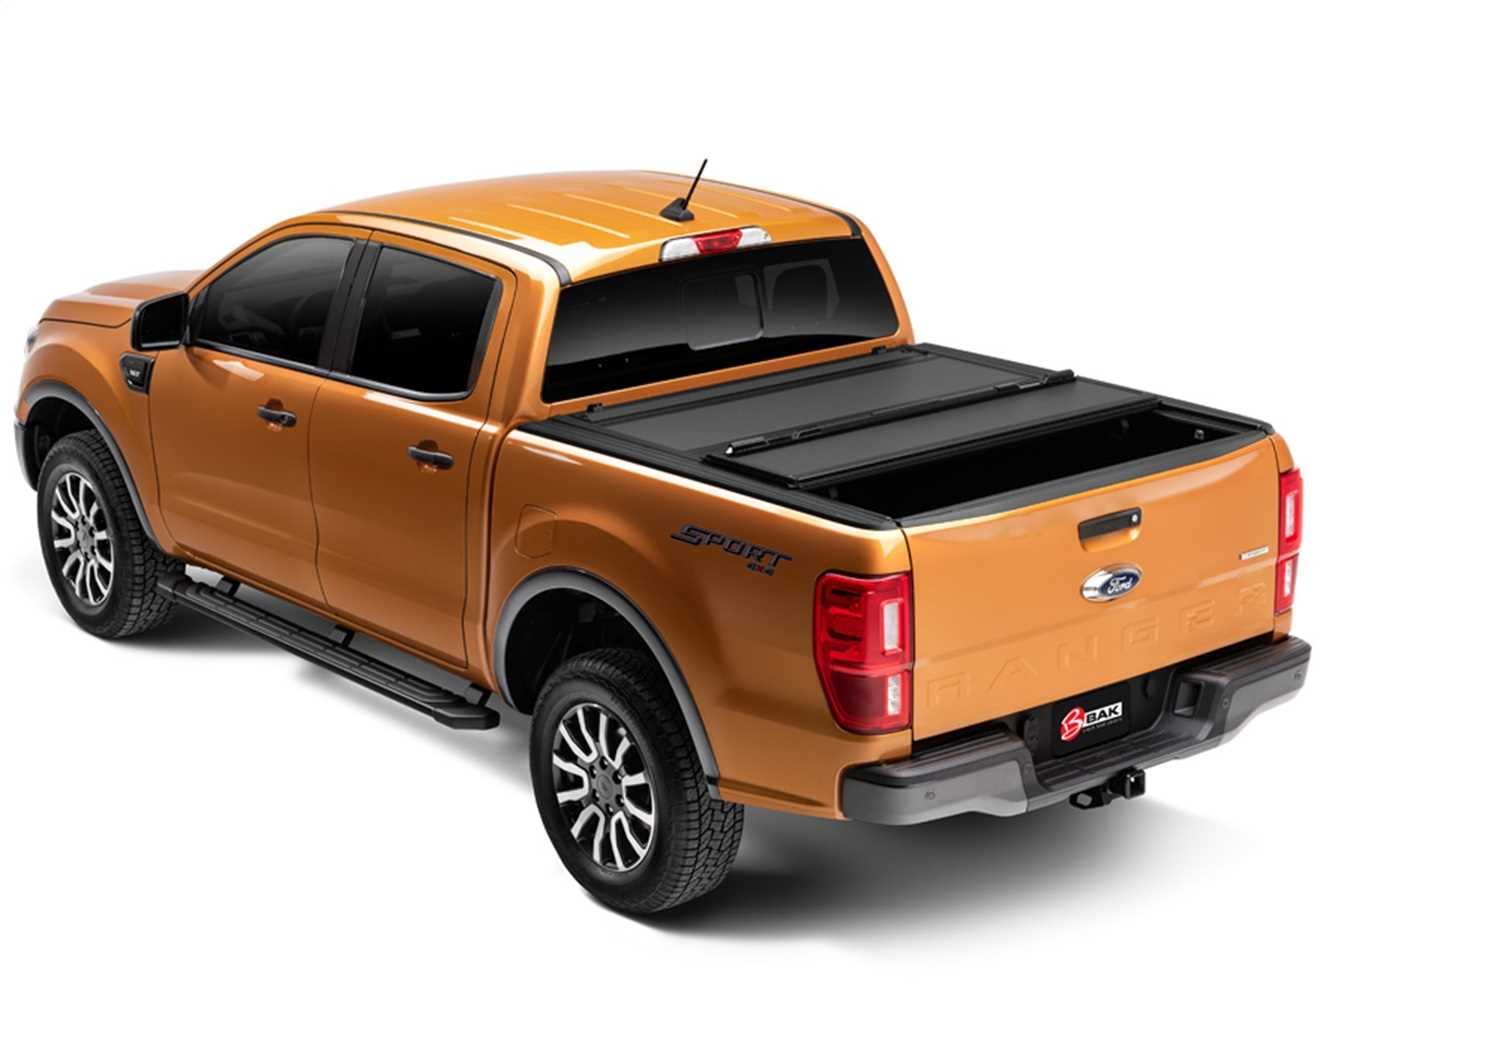 448332 Bak Industries BAKFlip MX4 Hard Folding Truck Bed Cover